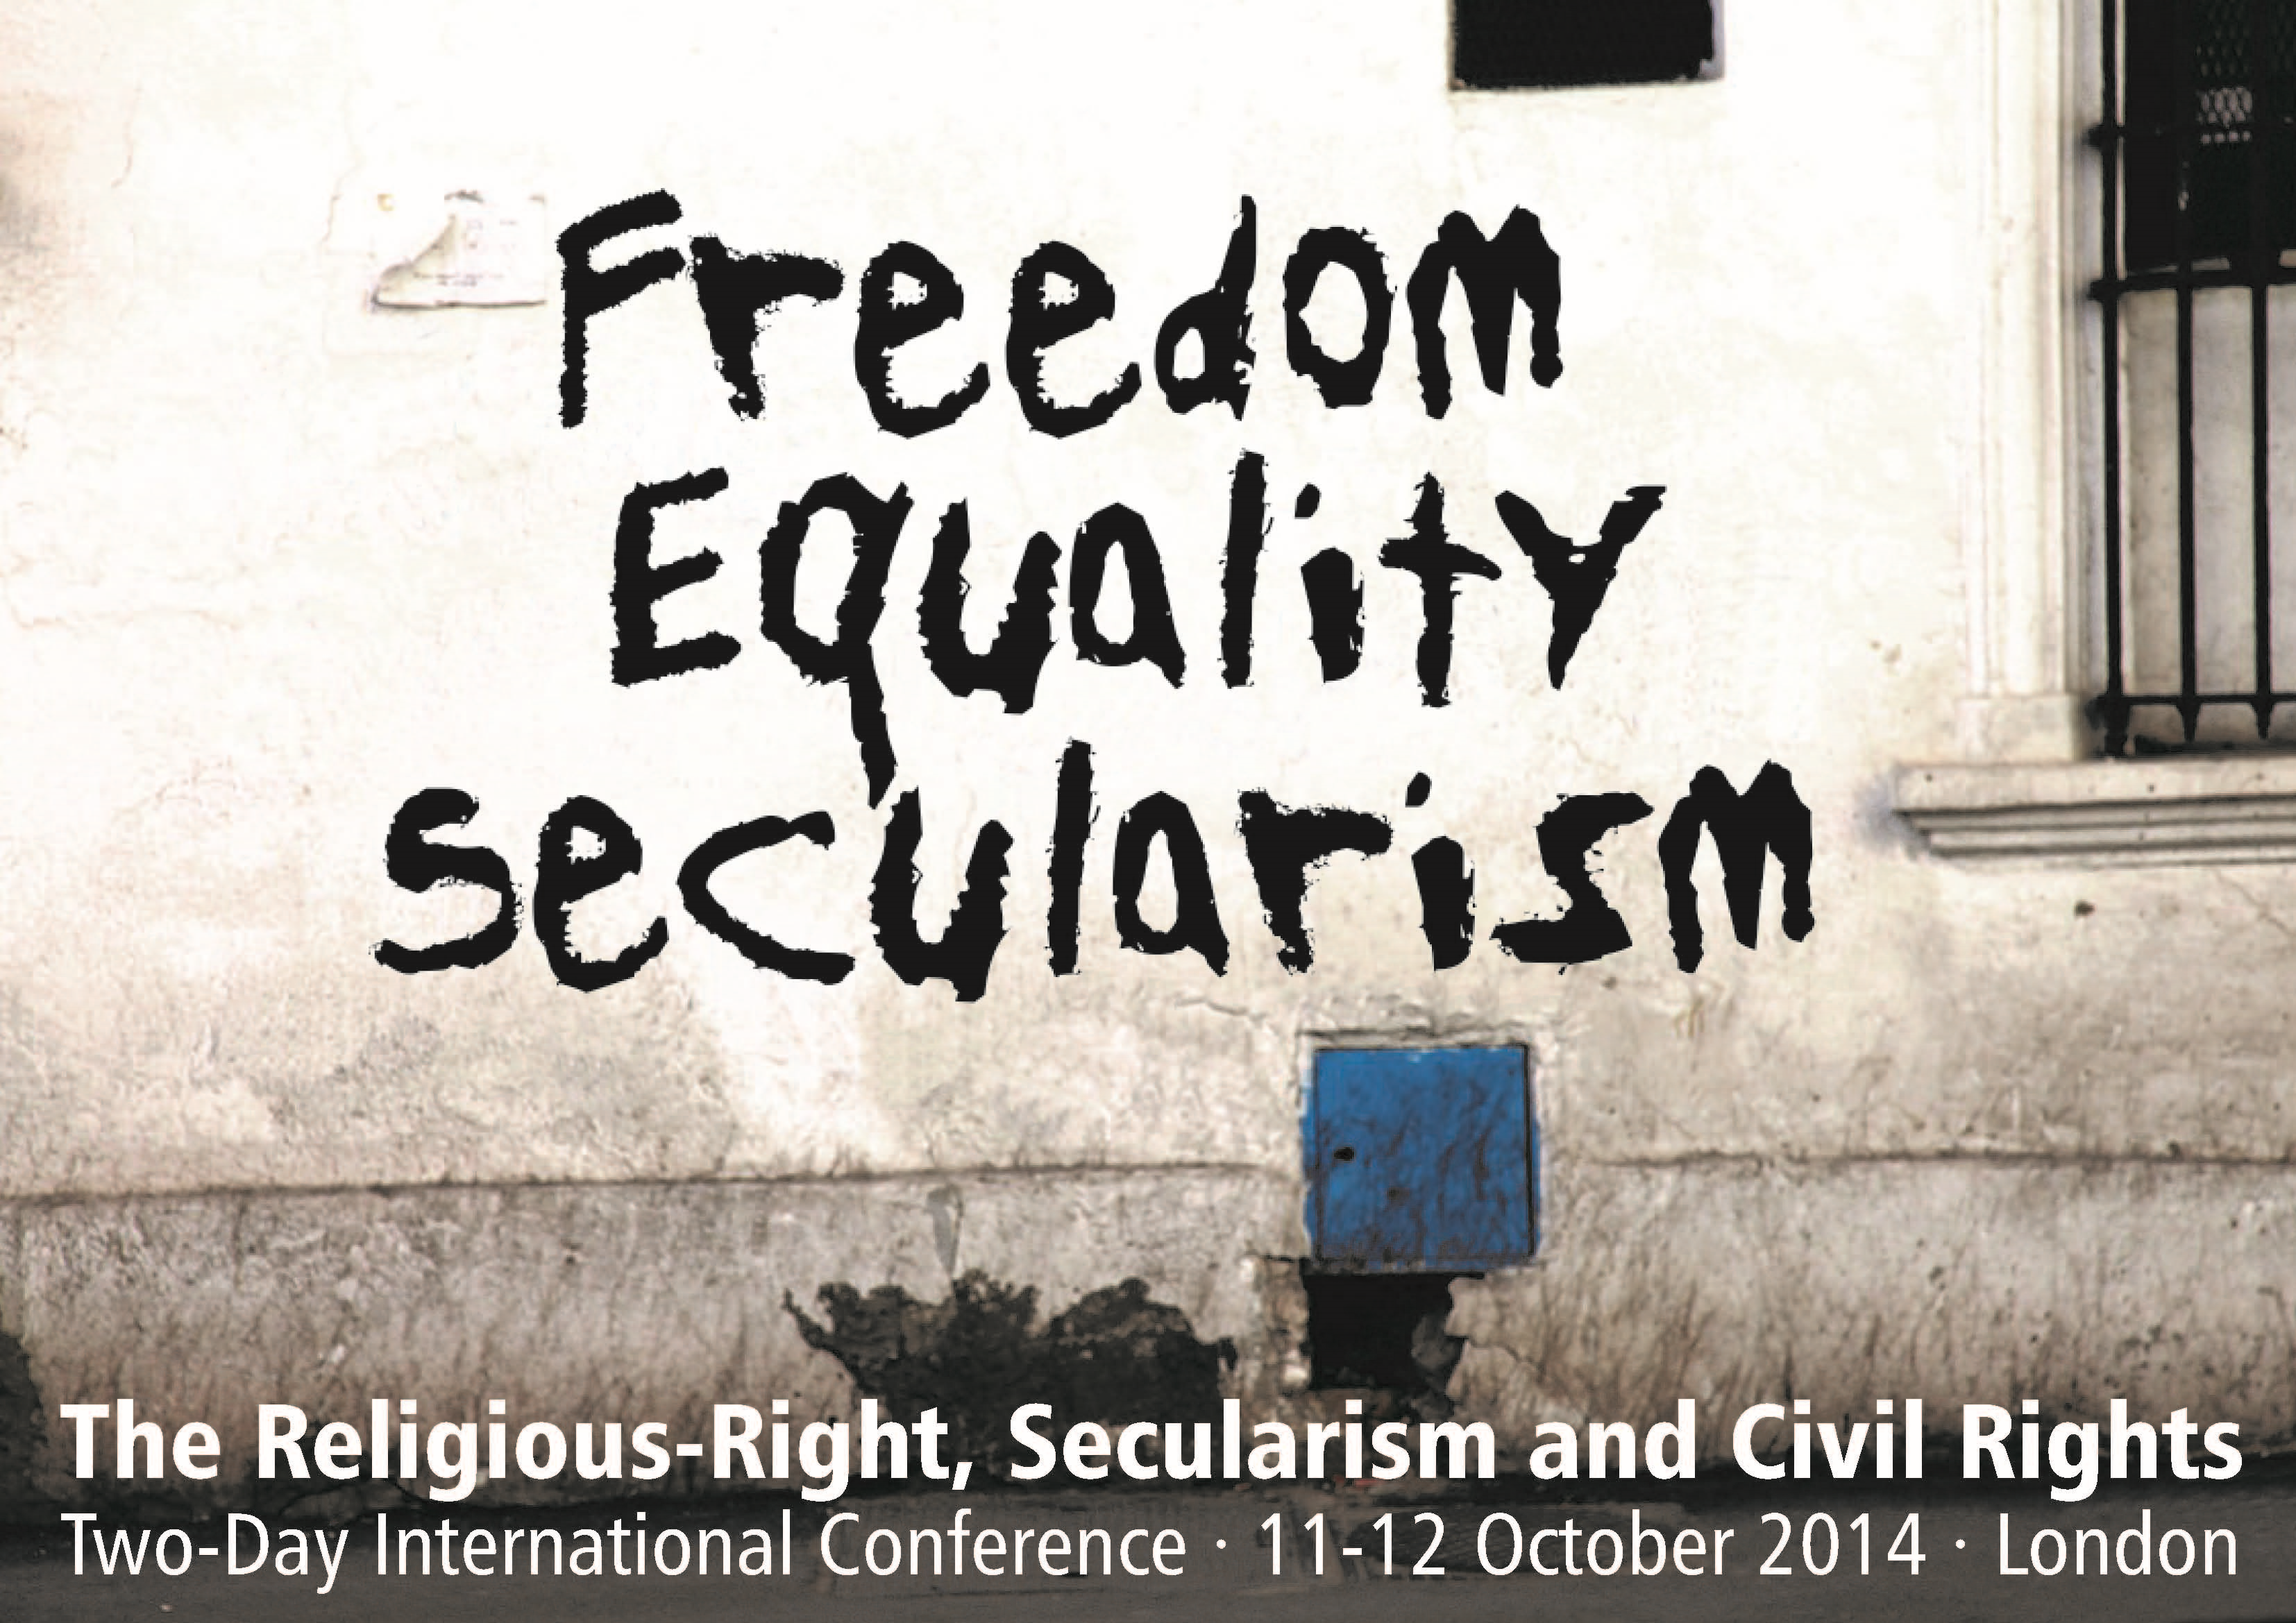 s1 on  article secularism in the constitution but based on secular basis like usa and in the secular world order the following items are referenced